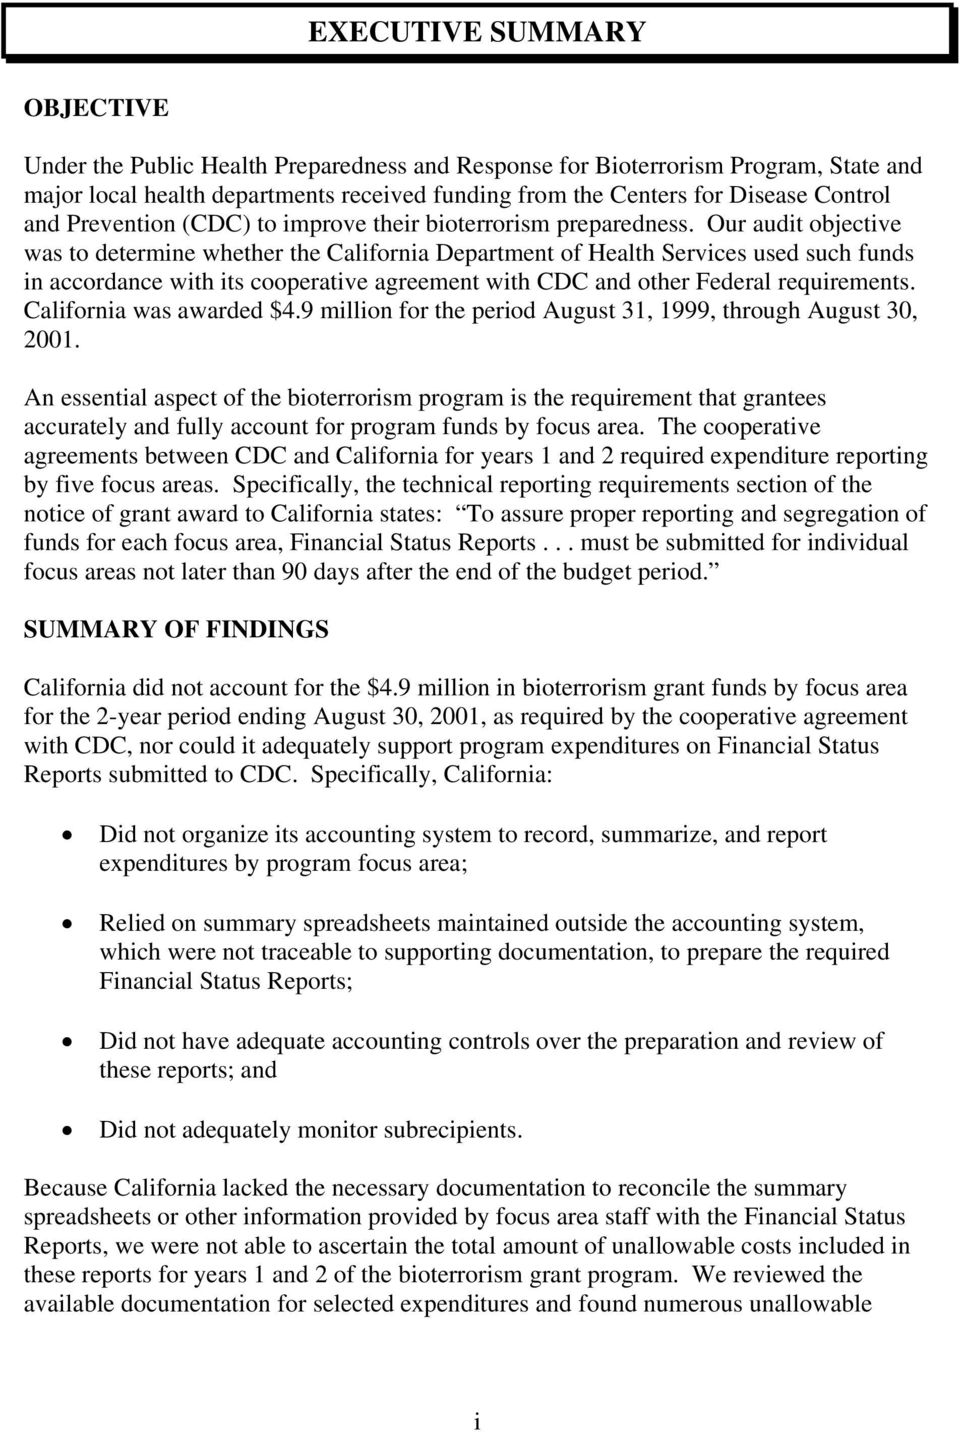 Our audit objective was to determine whether the California Department of Health Services used such funds in accordance with its cooperative agreement with CDC and other Federal requirements.